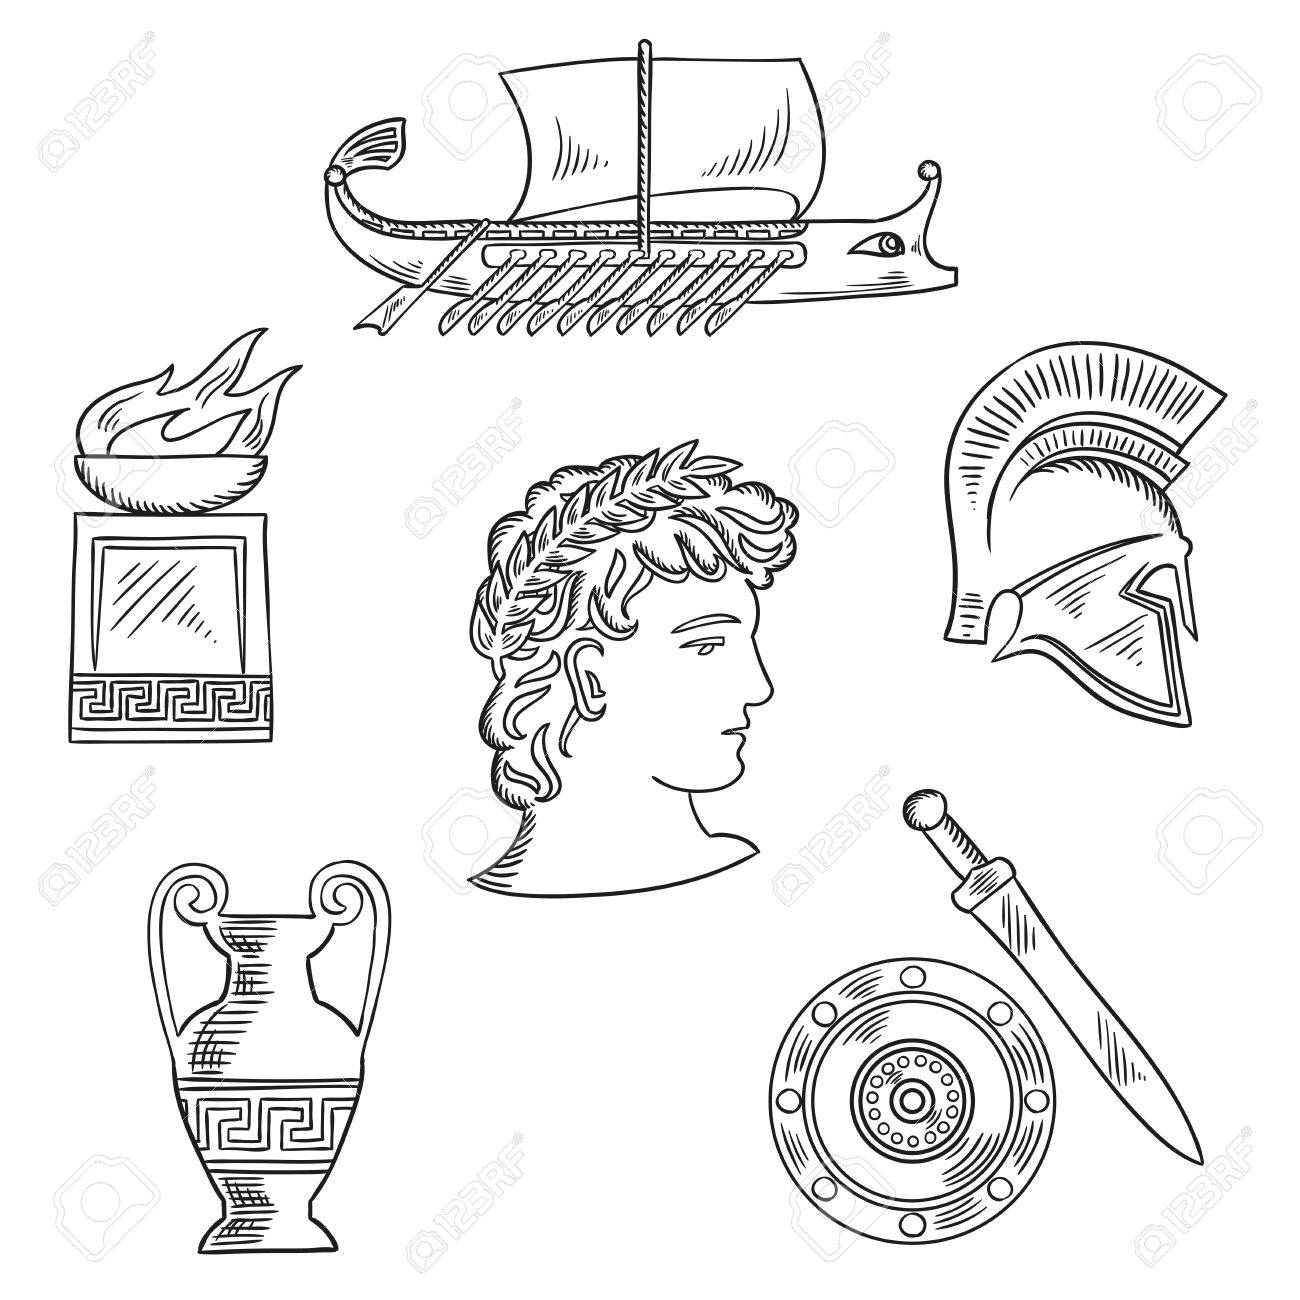 Historical and cultural symbols of ancient greece with emperor historical and cultural symbols of ancient greece with emperor in laurel wreath surrounded by sketches biocorpaavc Image collections